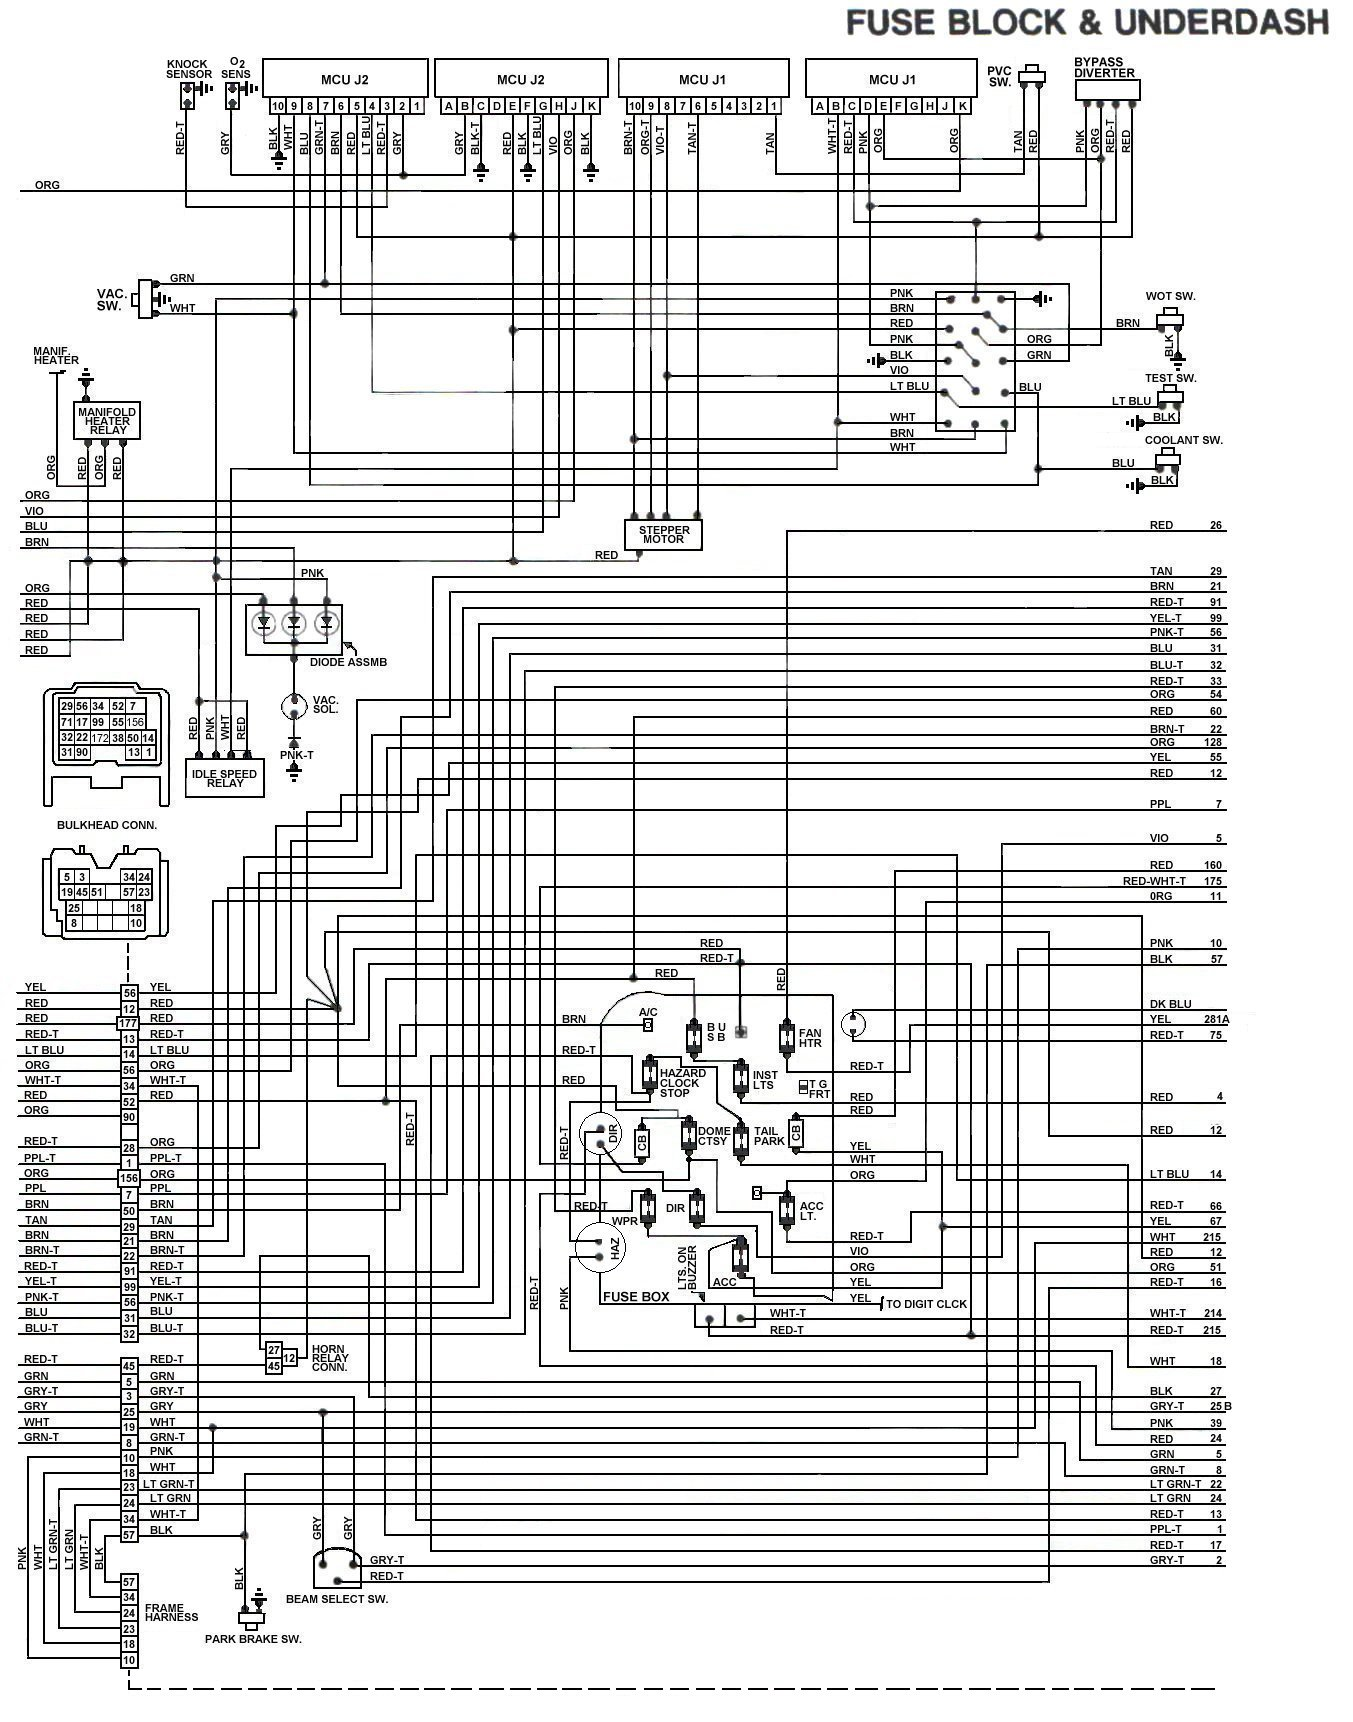 83_FSJ_WiringDiagram_FuseBlock Underdash tom 'oljeep' collins fsj wiring page  at gsmportal.co